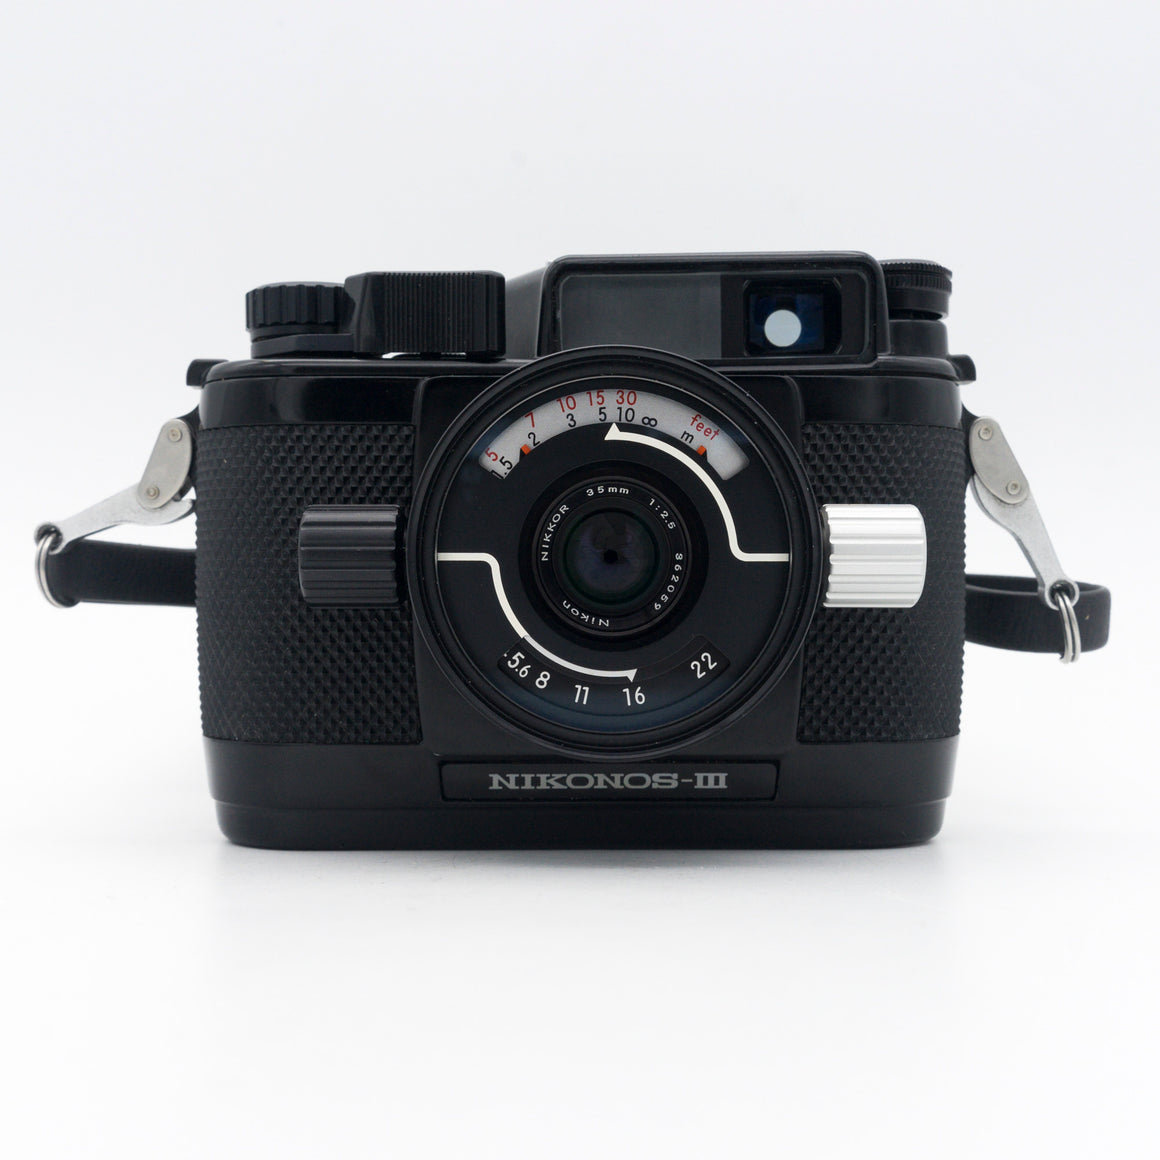 Nikonos-III 35mm Underwater Point & Shoot Camera with Nikkor 35mm f/2.5 & 80mm f/4 Lenses